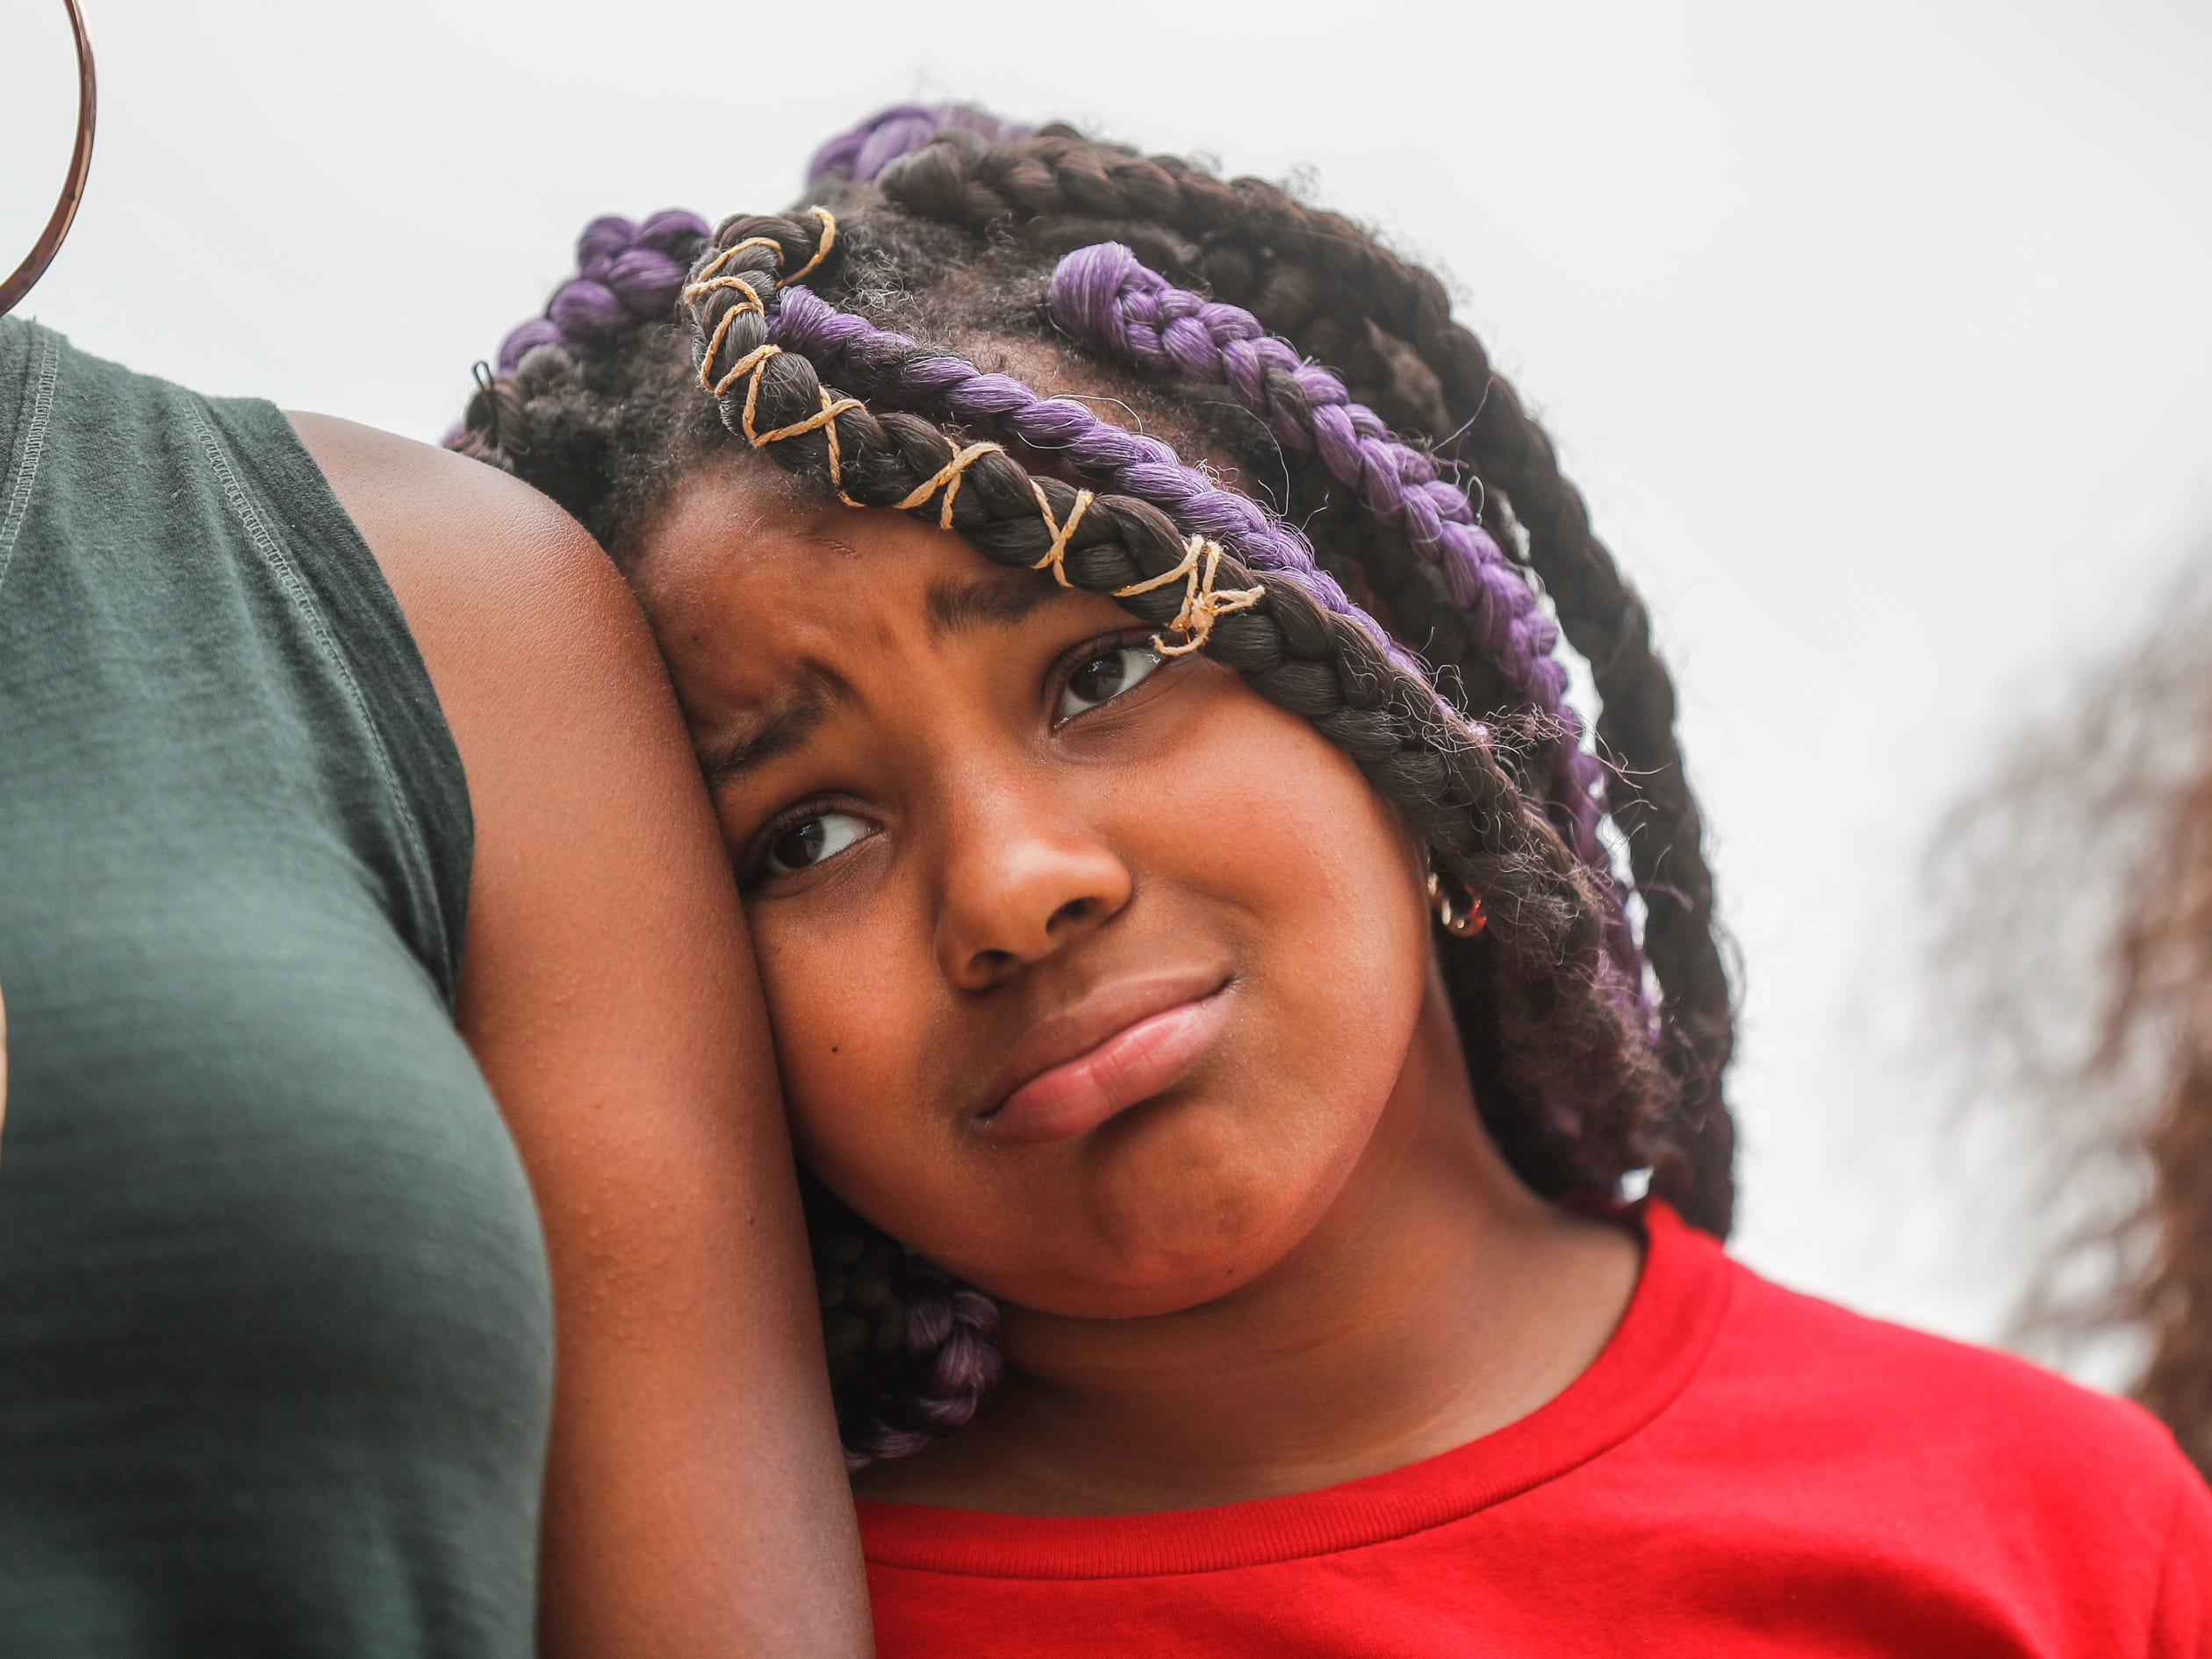 Ashlynn Davis leans on her mother while attending the 'We Live' Peace Walk and community day to end youth violence at Washington Park. on Saturday, Aug. 11, 2018. 'We Live,' which stands for 'Linked To Intercept Violence' was started by students from Warren Central High School in Indianapolis.